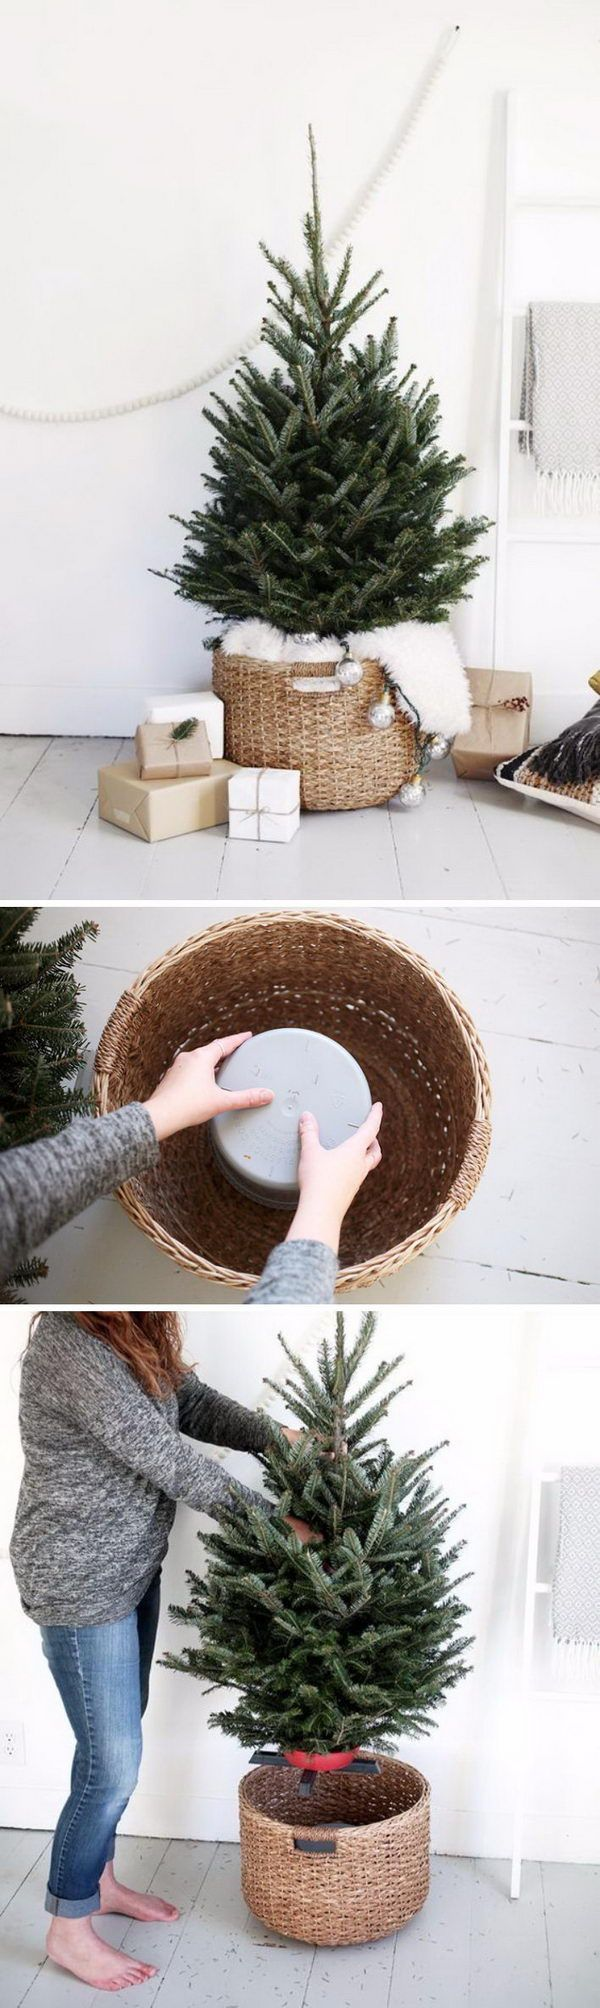 Diy Christmas Tree Stand Using Bucket Upside Down In A Large Basket Diy Christmas Tree Christmas Decorations Christmas Diy